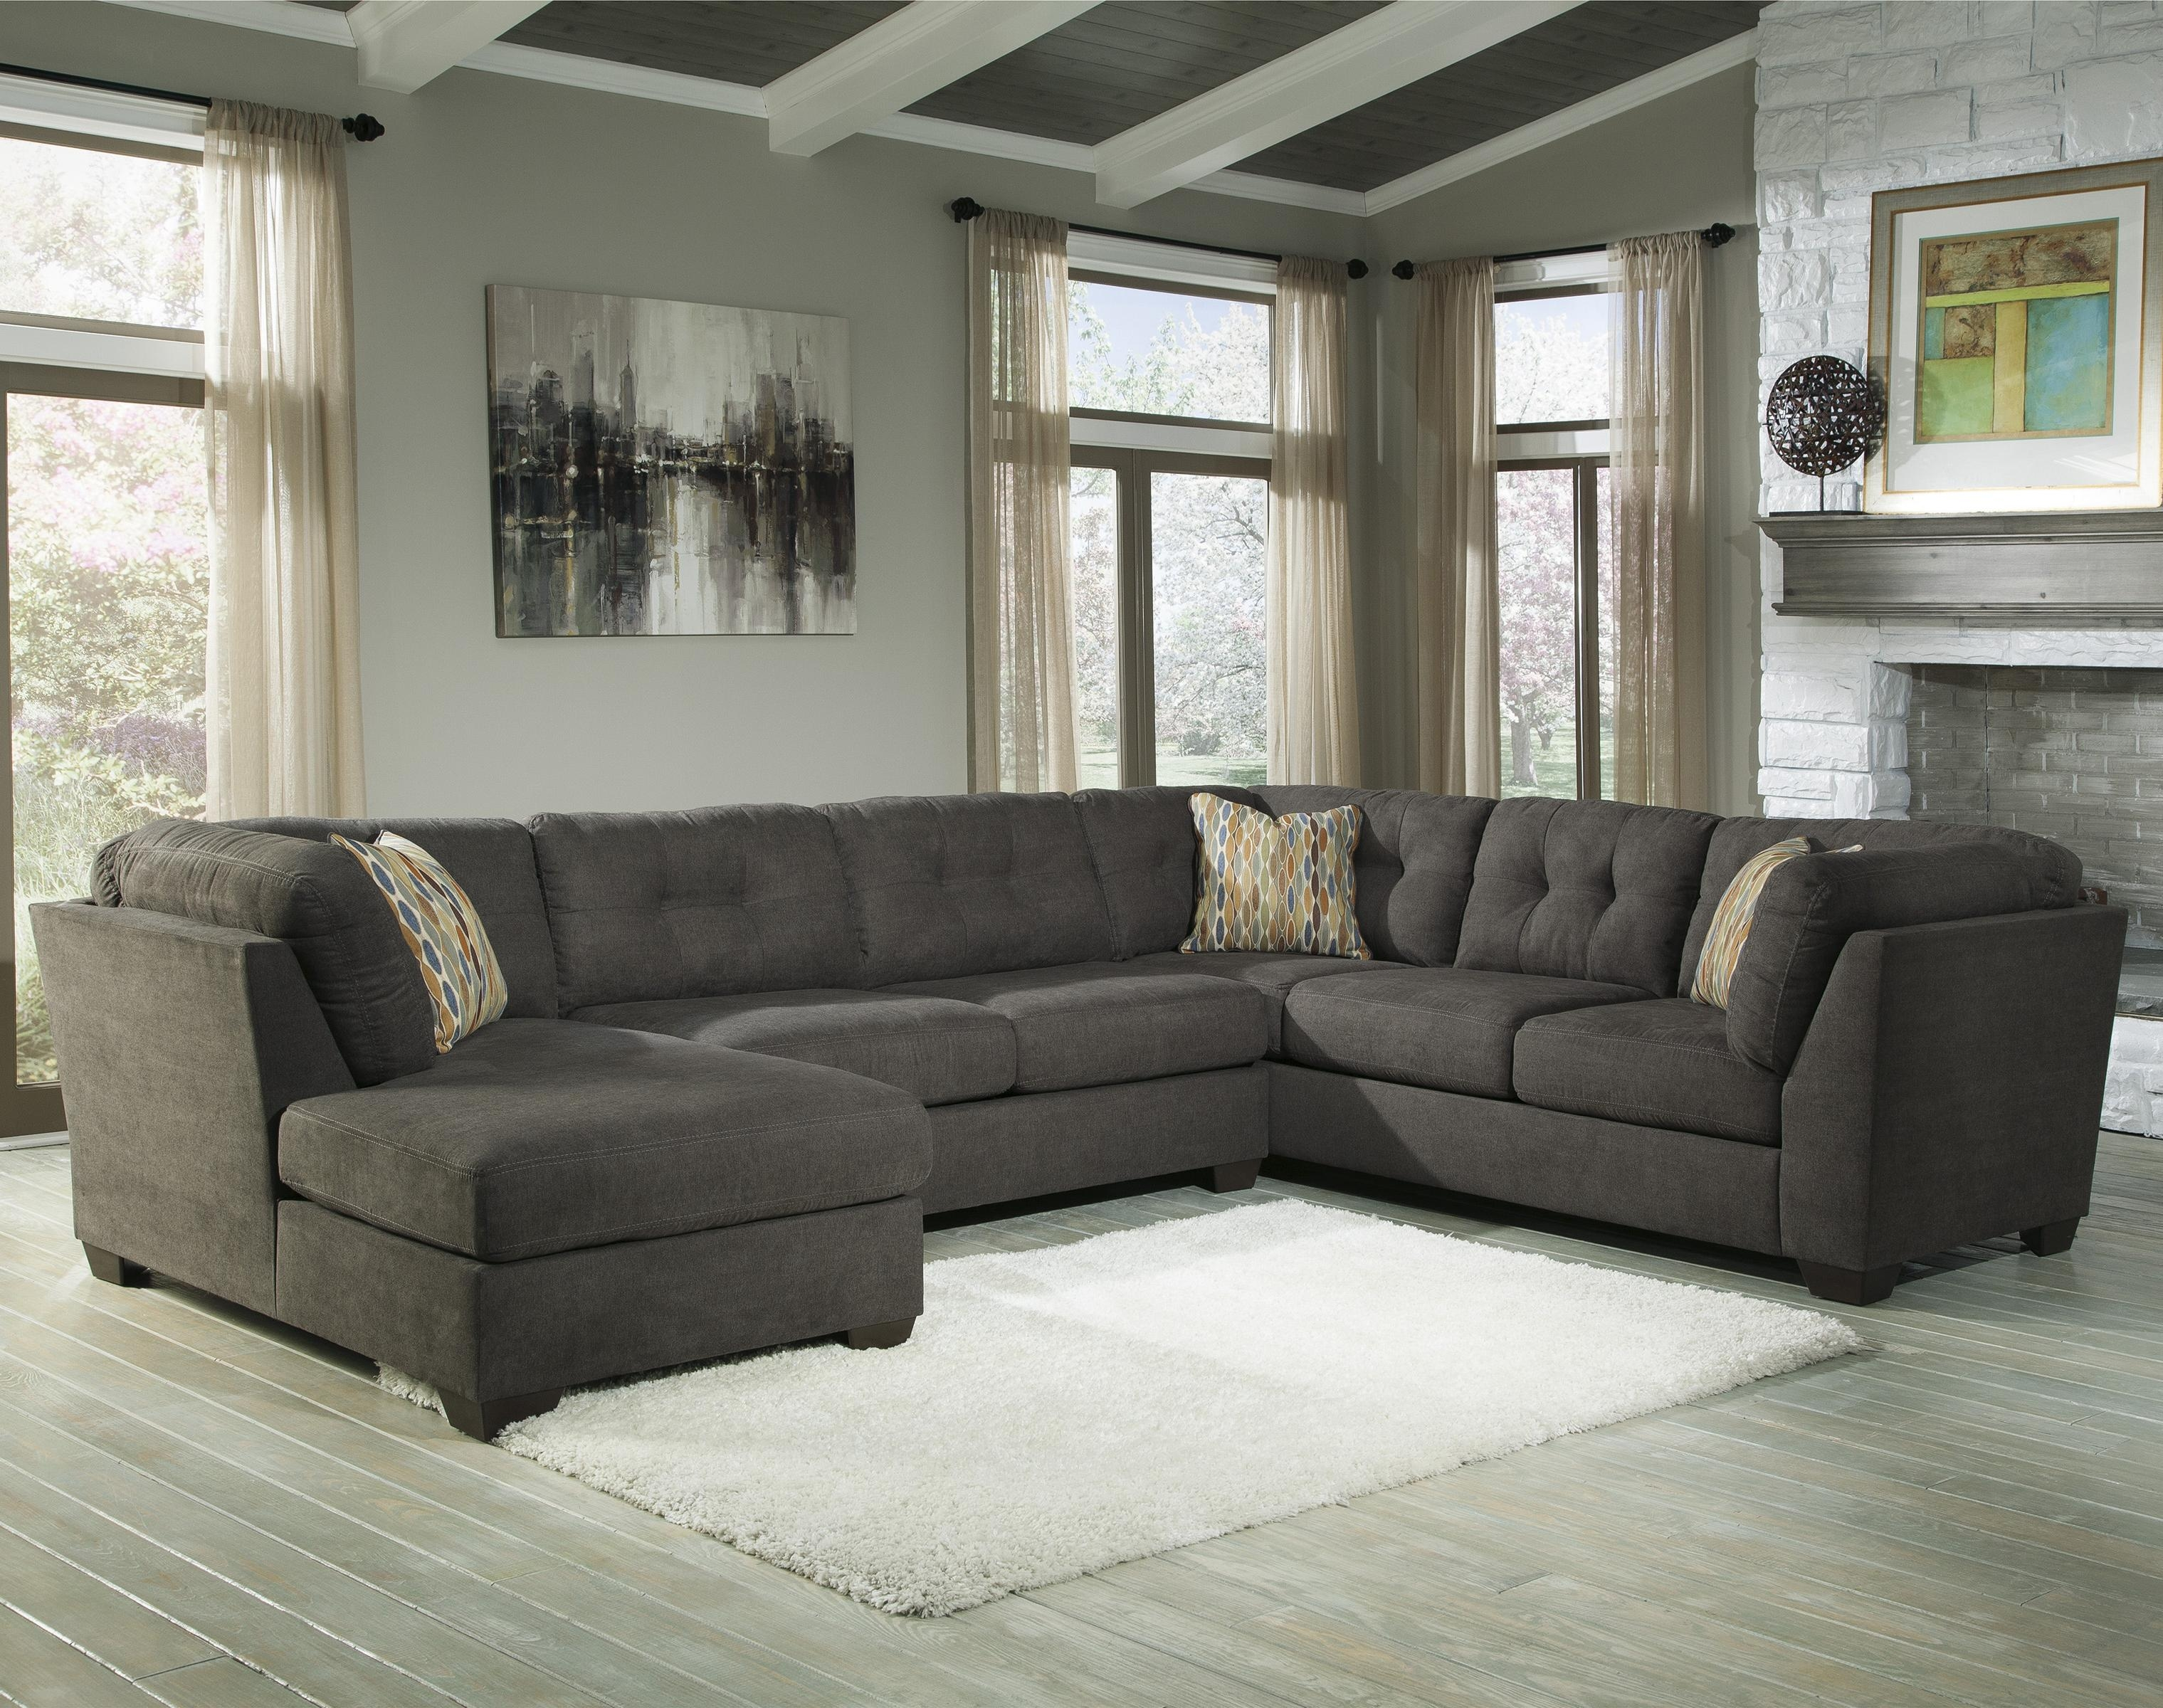 Benchcraft Delta City Steel 3 Piece Modular Sectional W Armless Throughout 3 Piece Sectional Sleeper Sofa (#2 of 12)